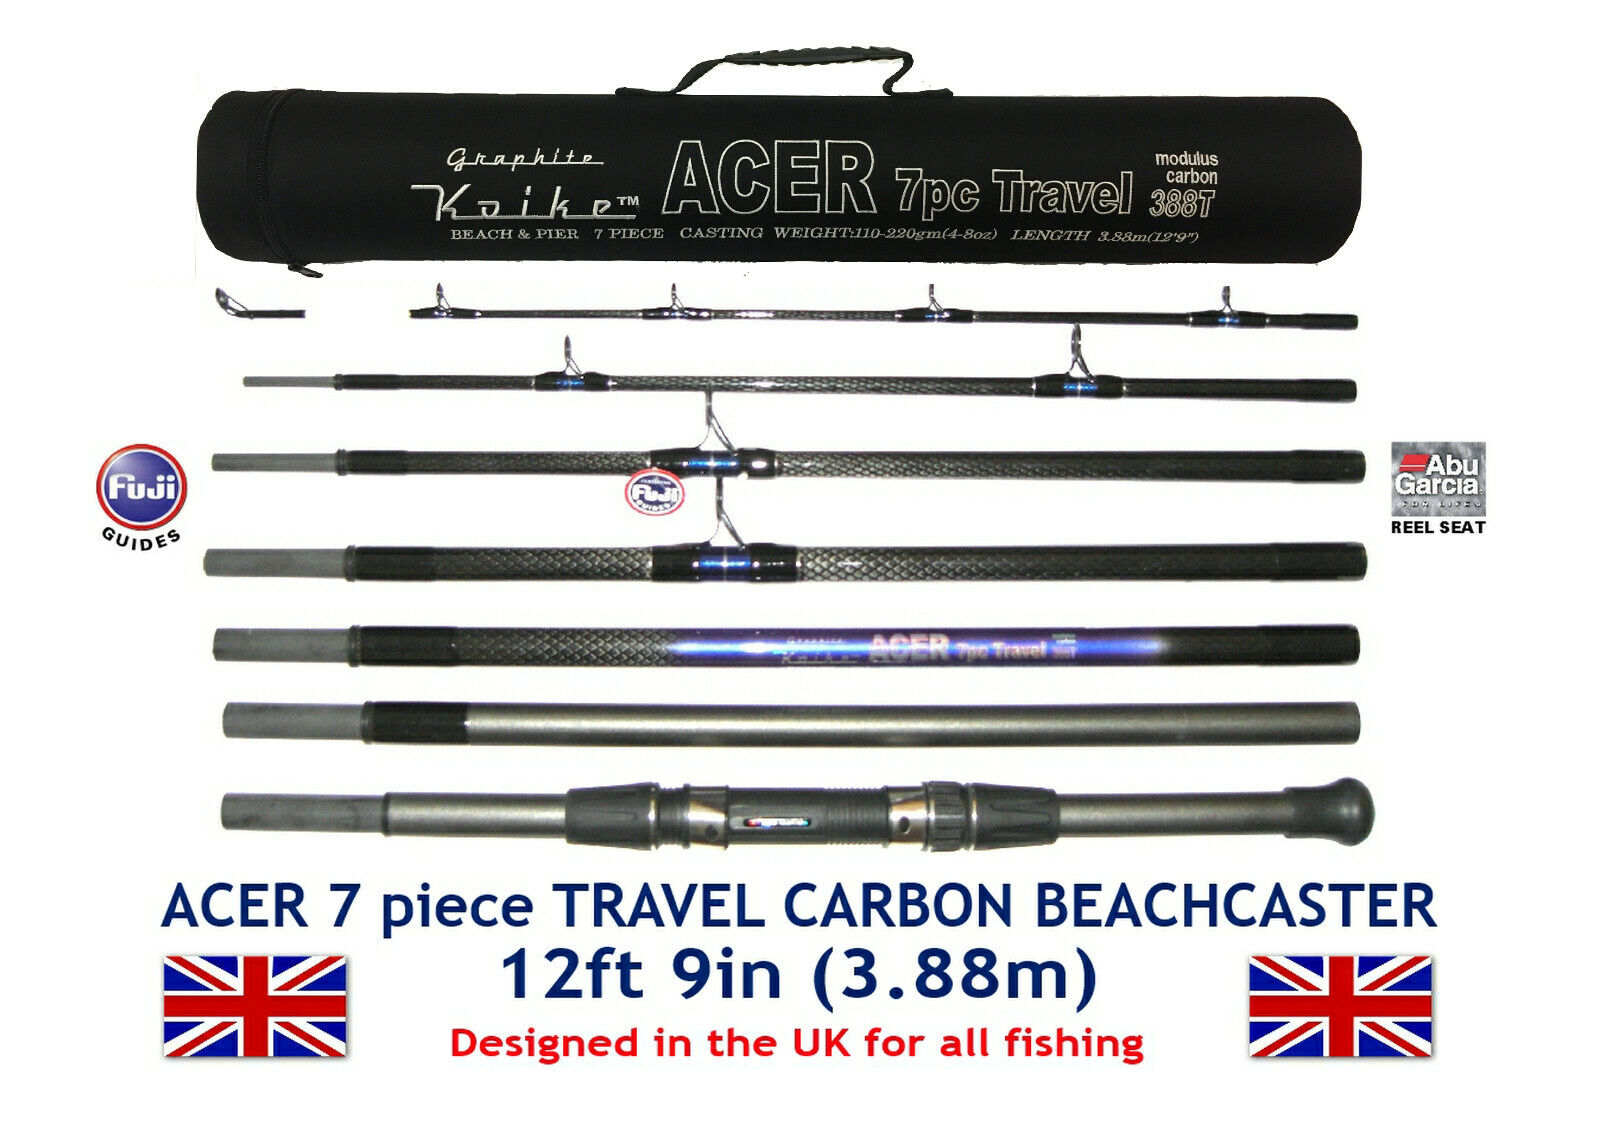 7pc ACER CARBON TRAVEL ROD 12ft 9in with Fuji Guides & ABU Movable Reel Seat